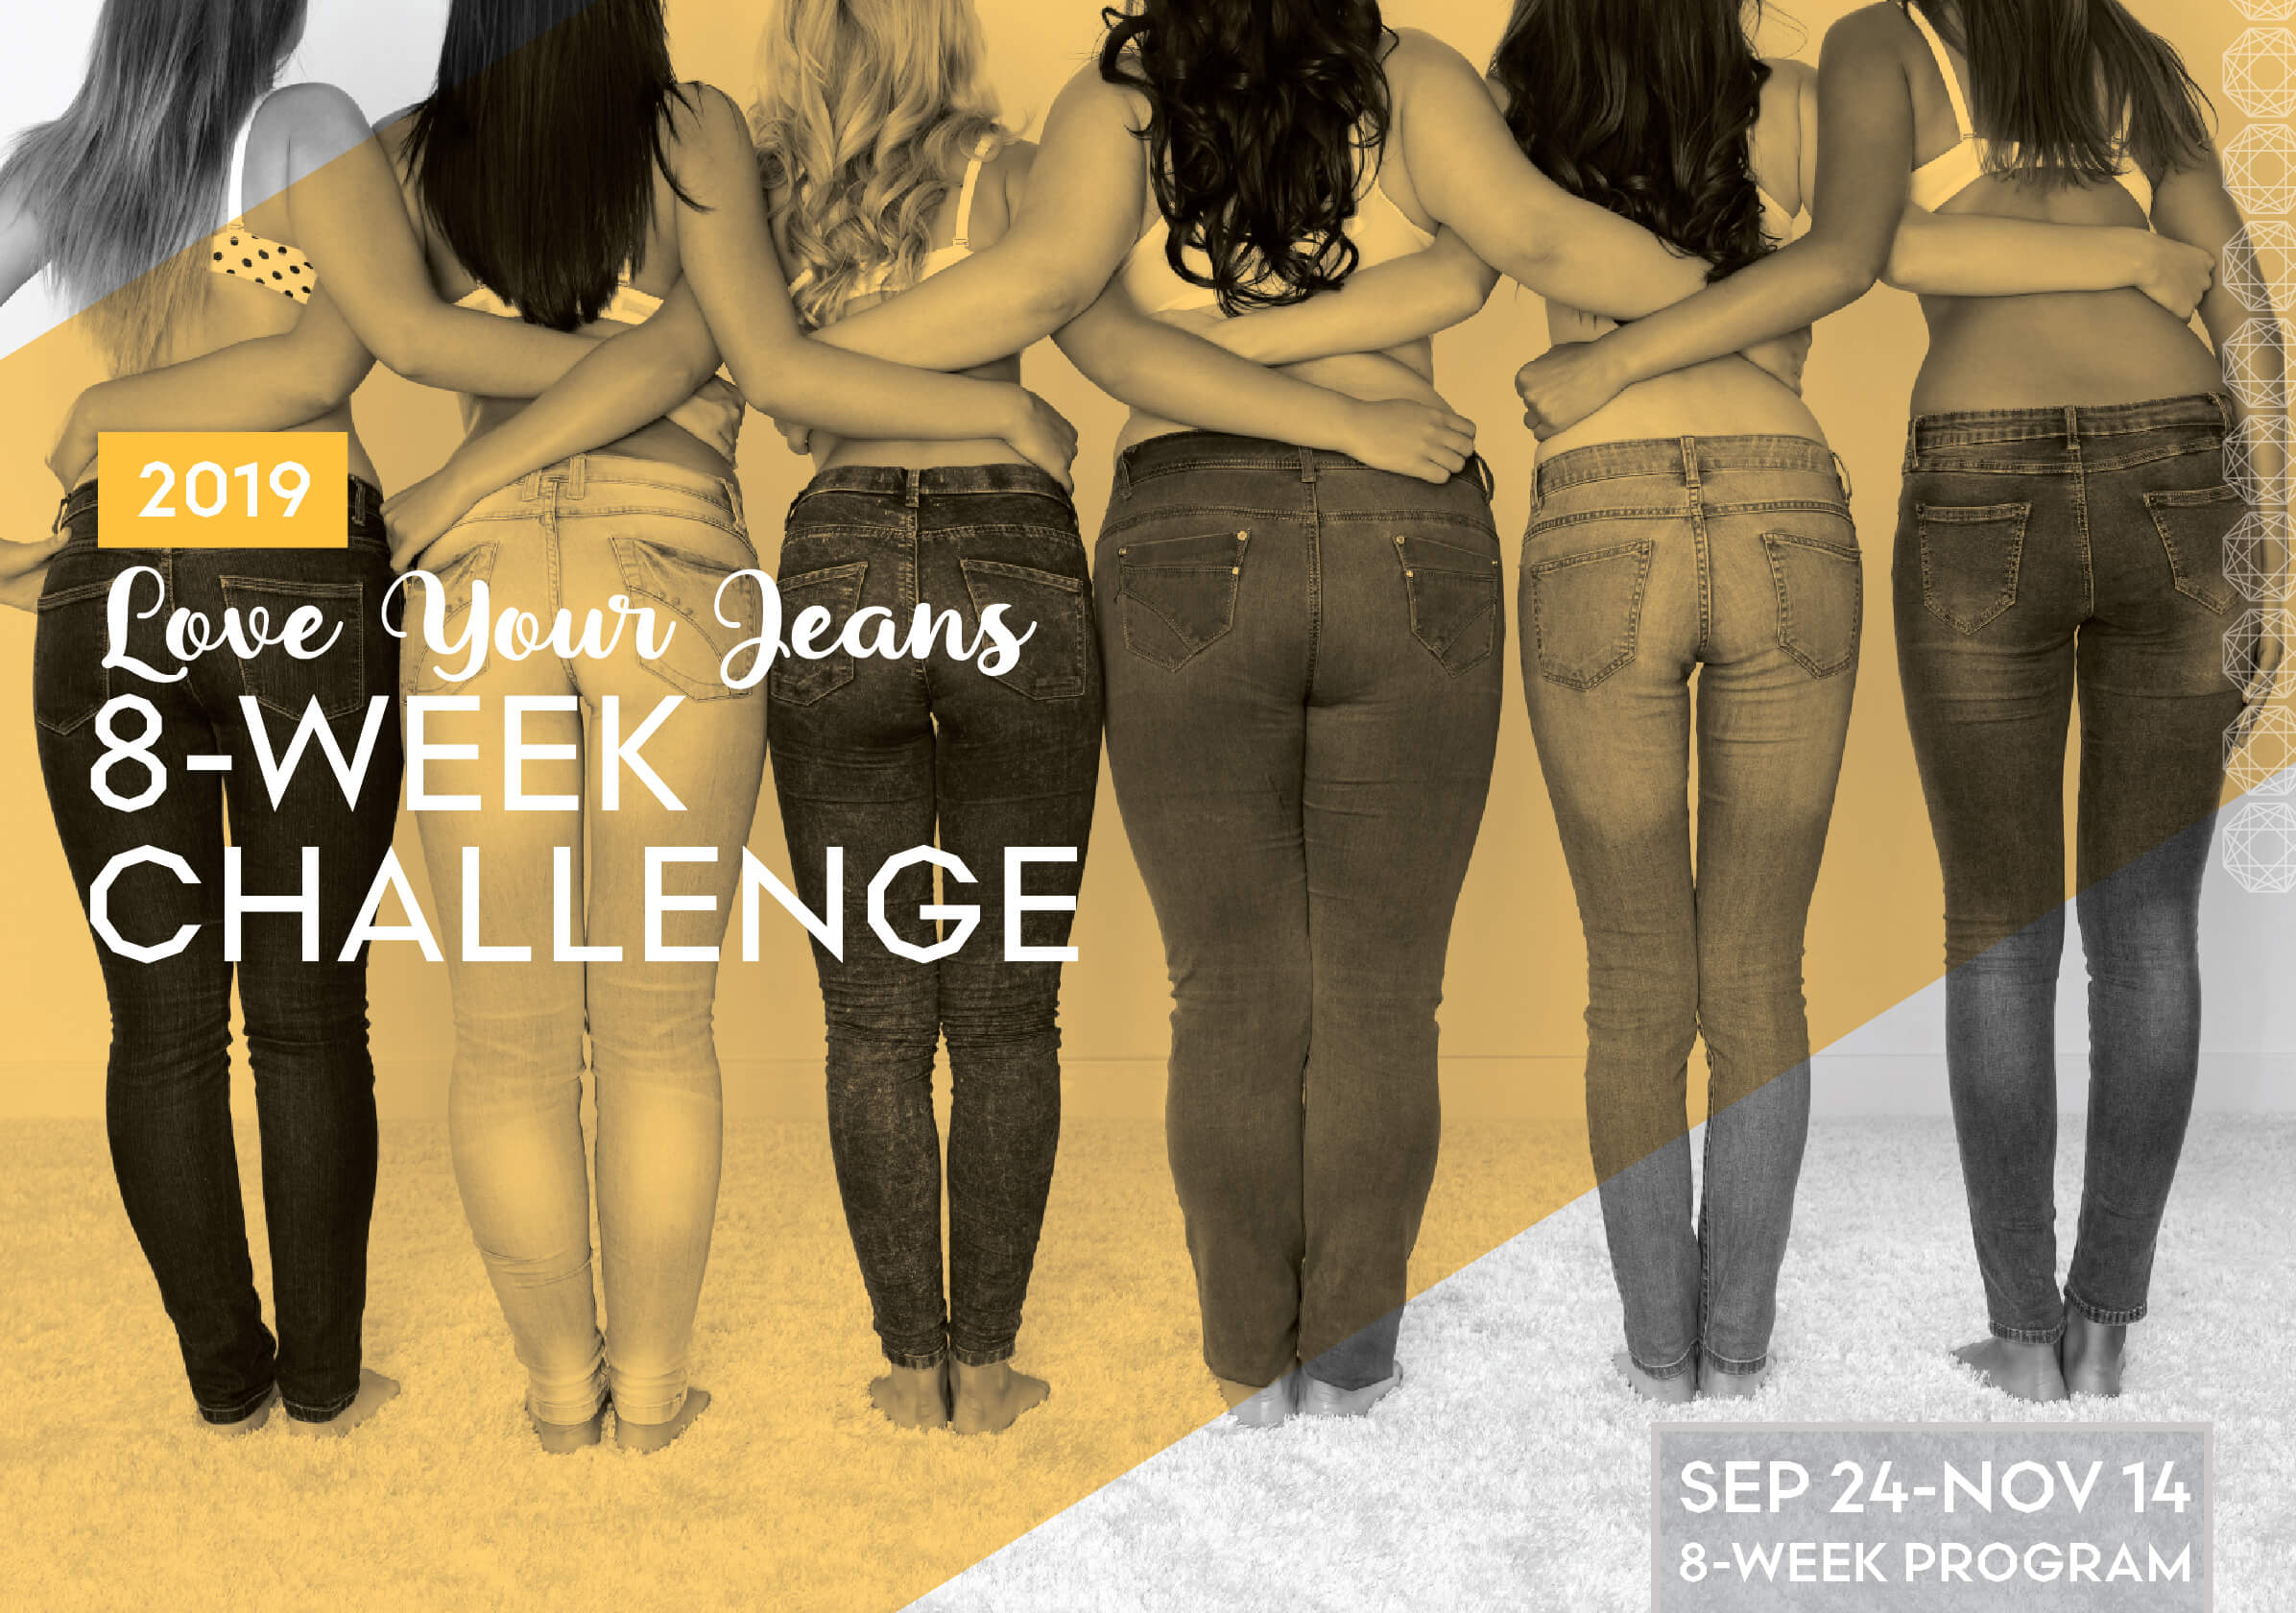 Love Your Jeans: 8-Week Challenge